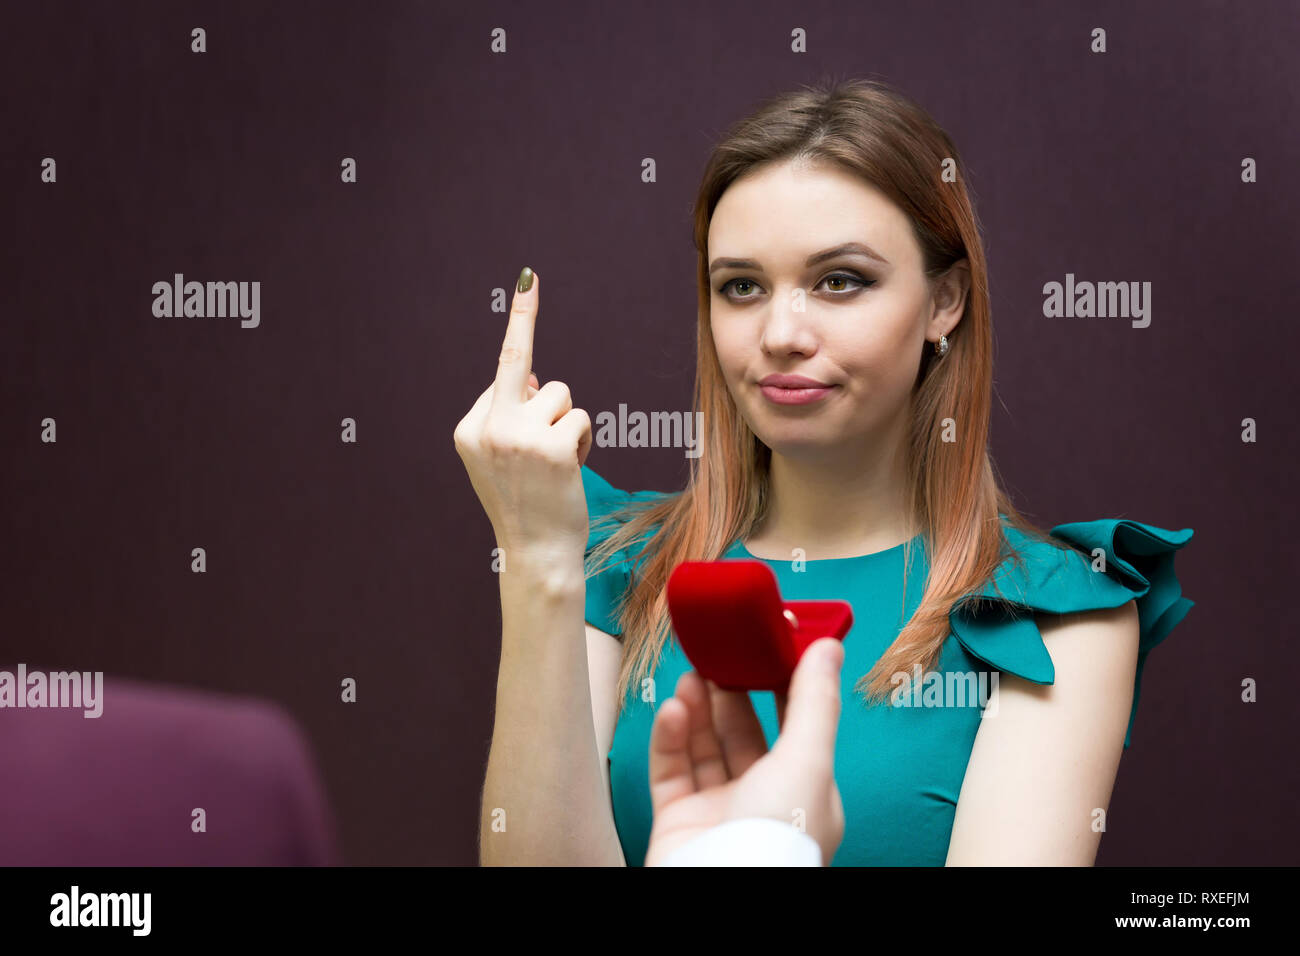 An evil woman refuses a man and shows a bad hand gesture. - Stock Image